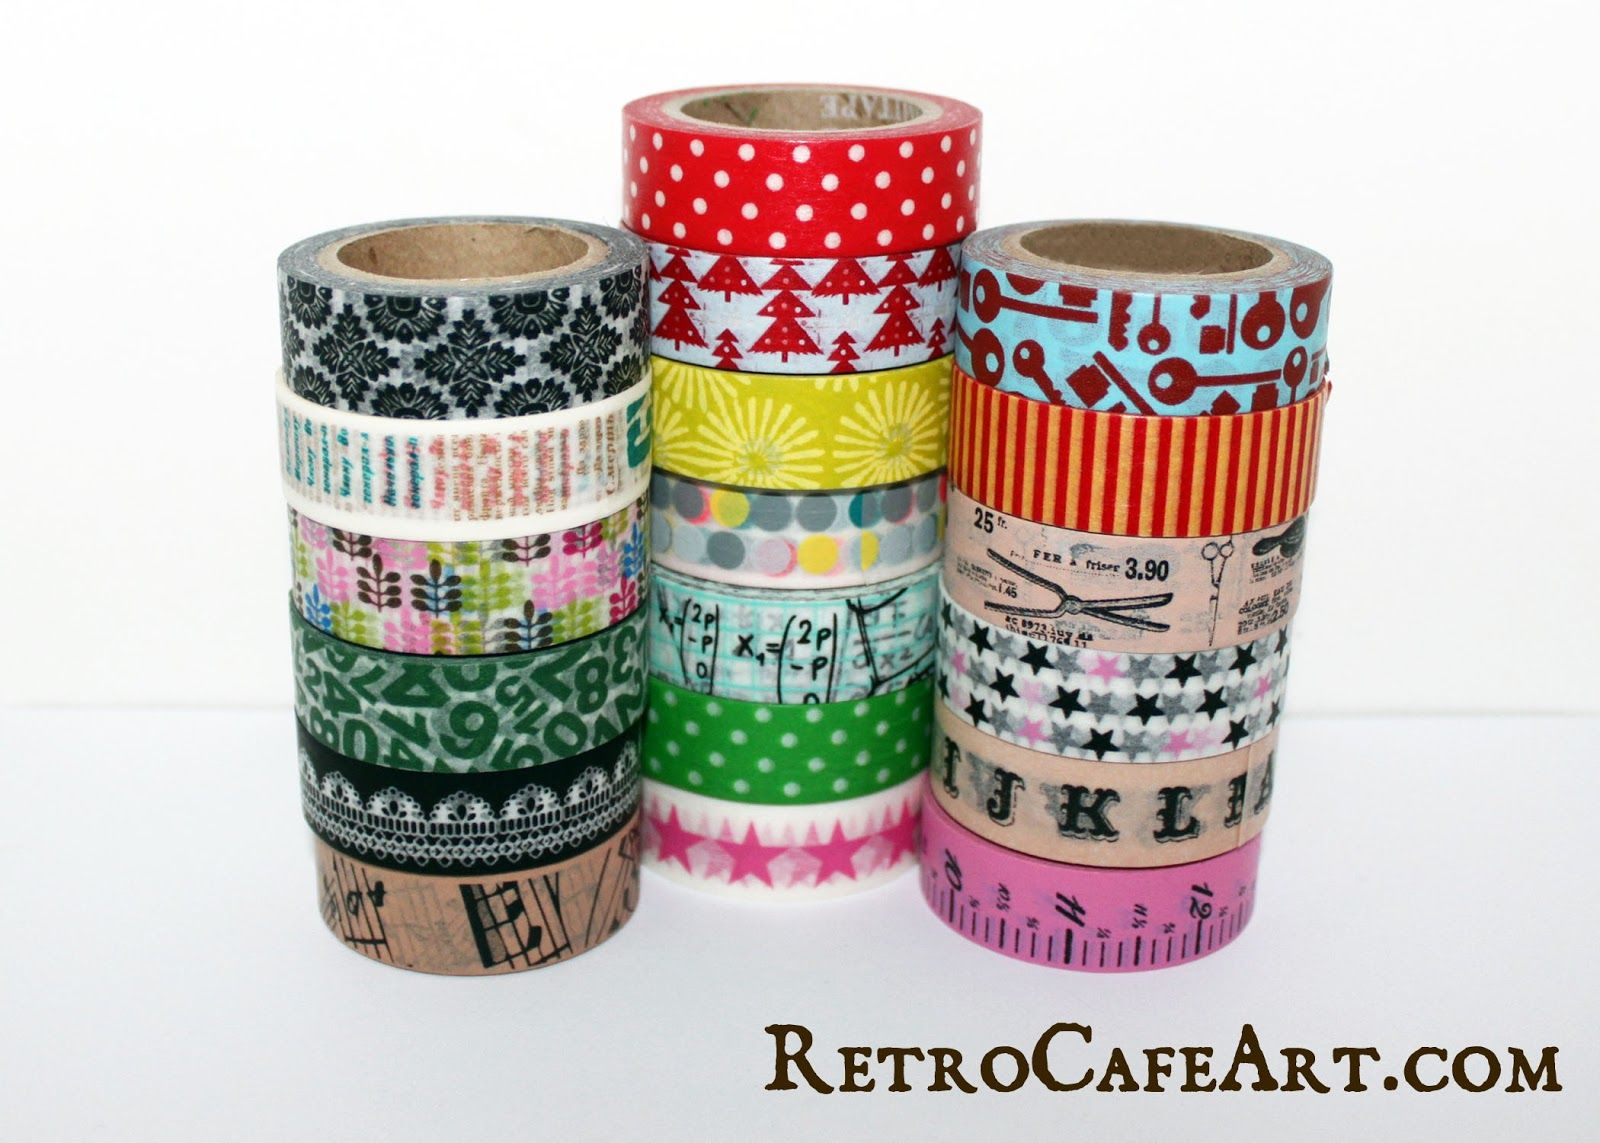 New Washi Tape and a SALE at www.retrocafeart.com